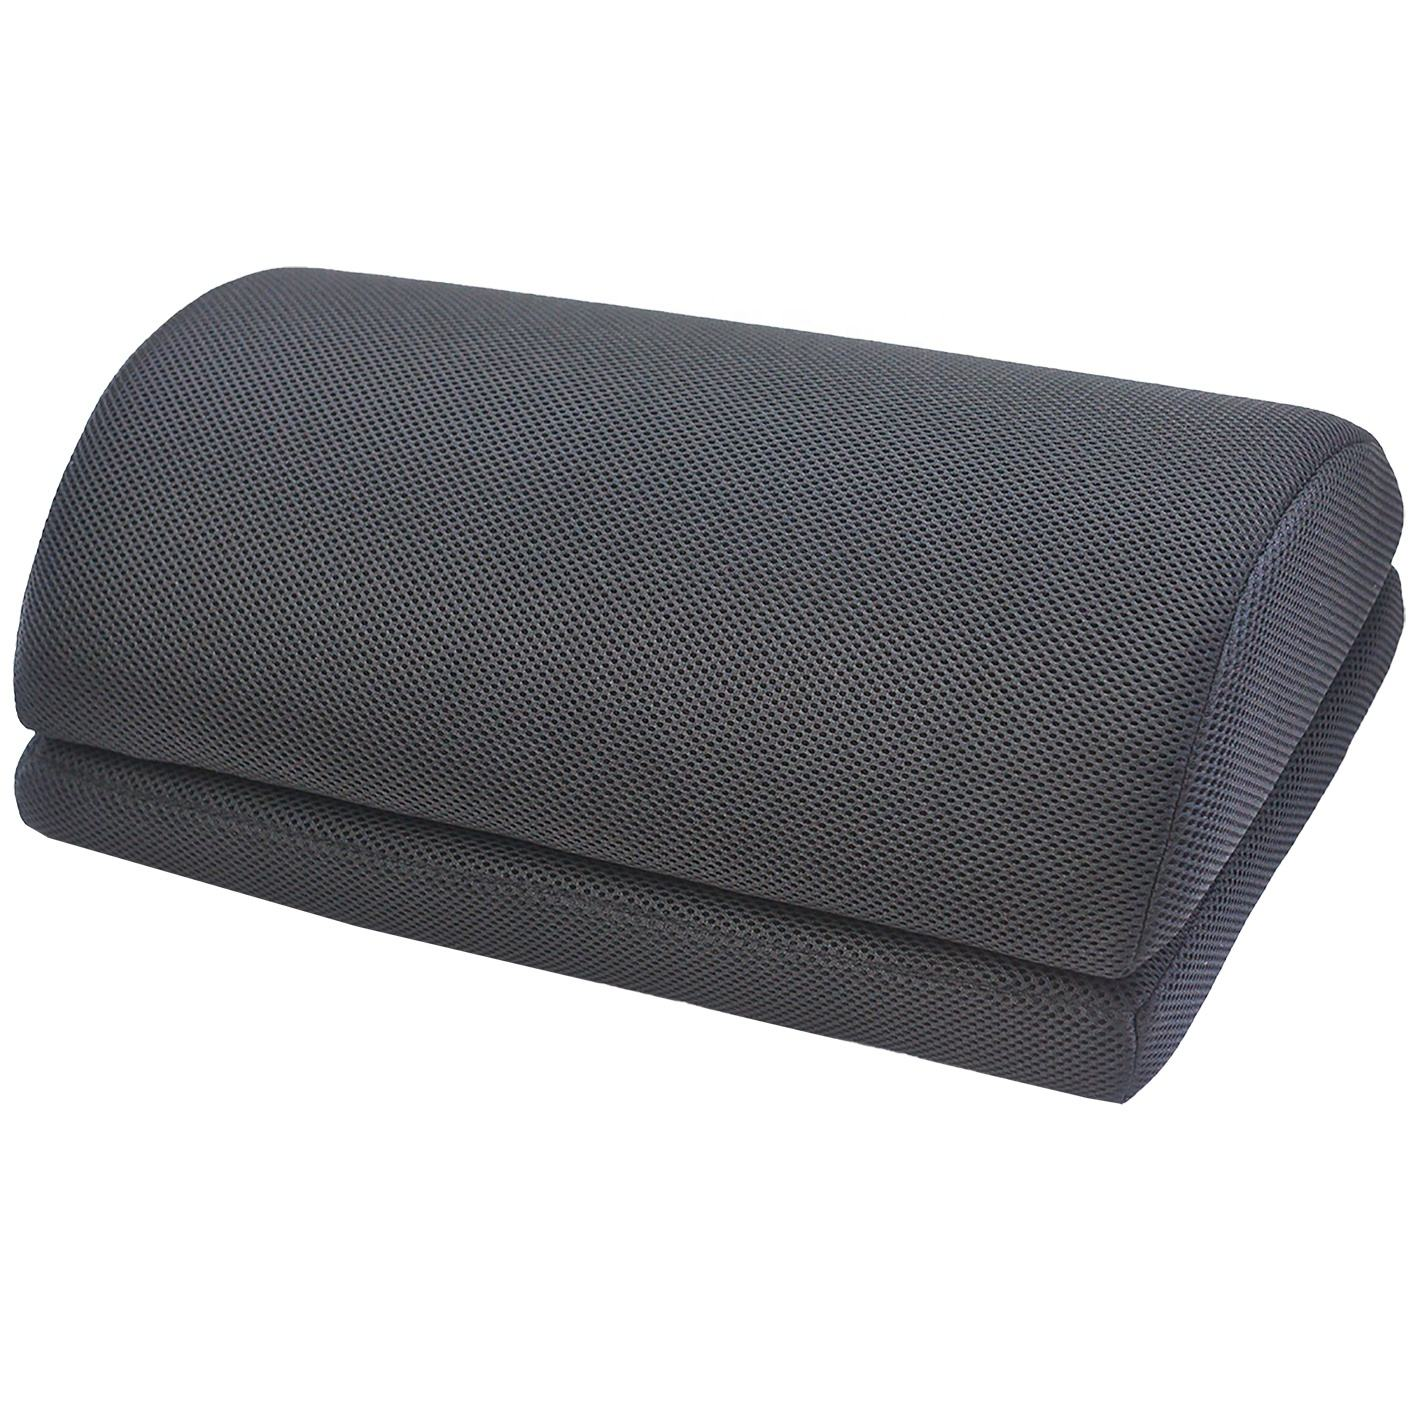 Yiwu Textile Factory Half Moon Foot pillow Memory Foam Pillow Bolster Foot Rest Cushion For Under Desk cushion